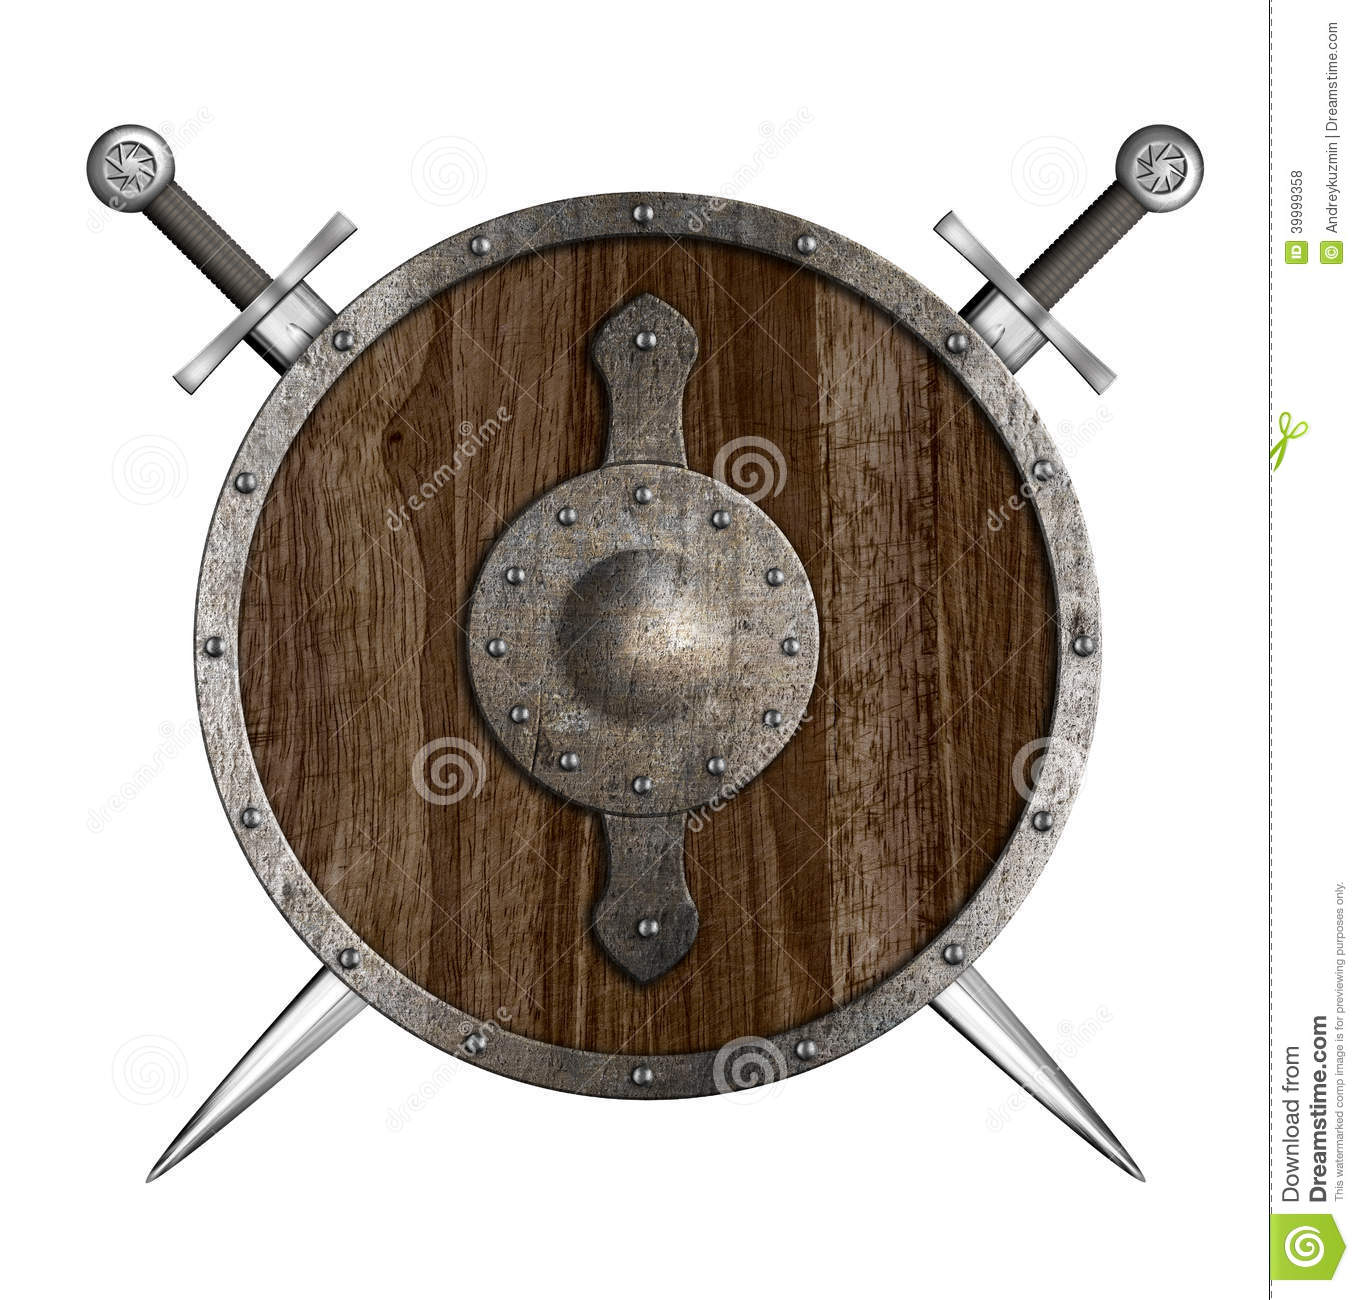 Crossed Swords And Wooden Round Shield Coat Of Arms Stock ...